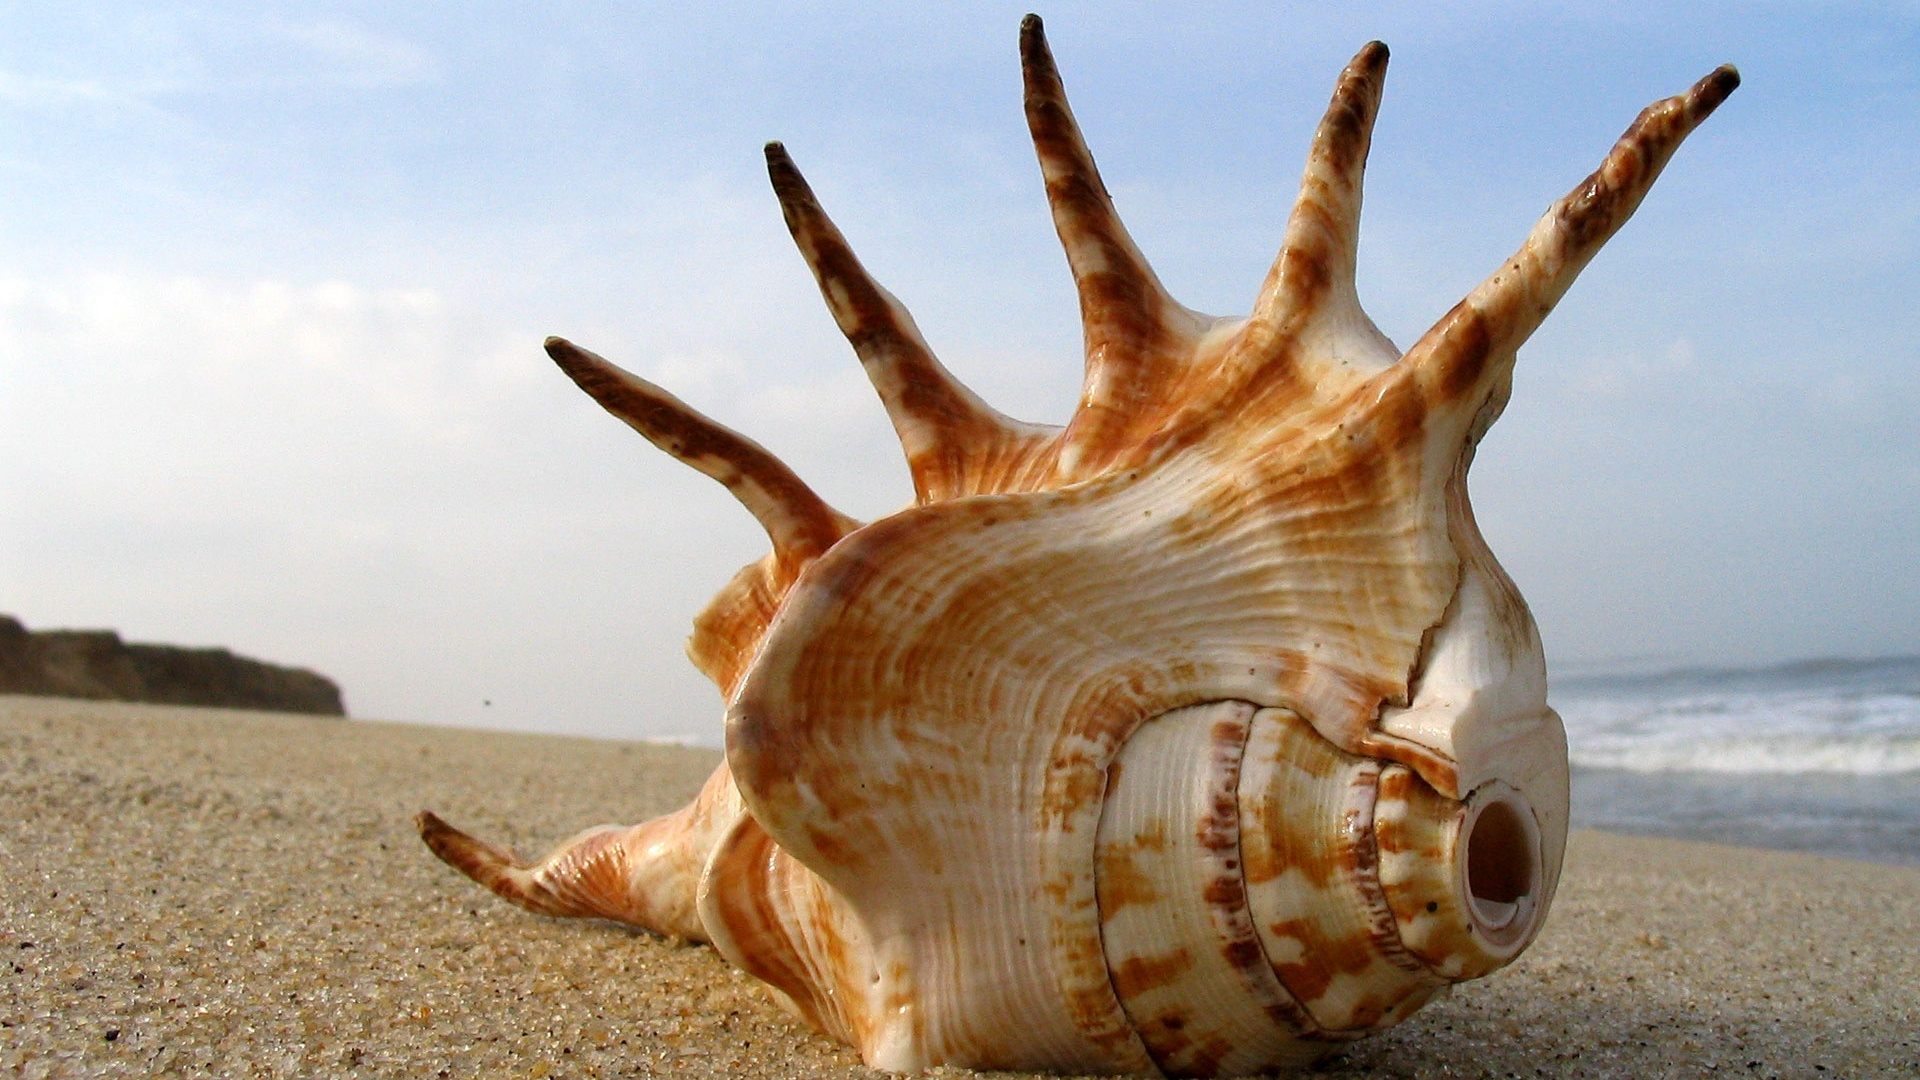 Cool Mohawk Sea Shell HD wallpapers